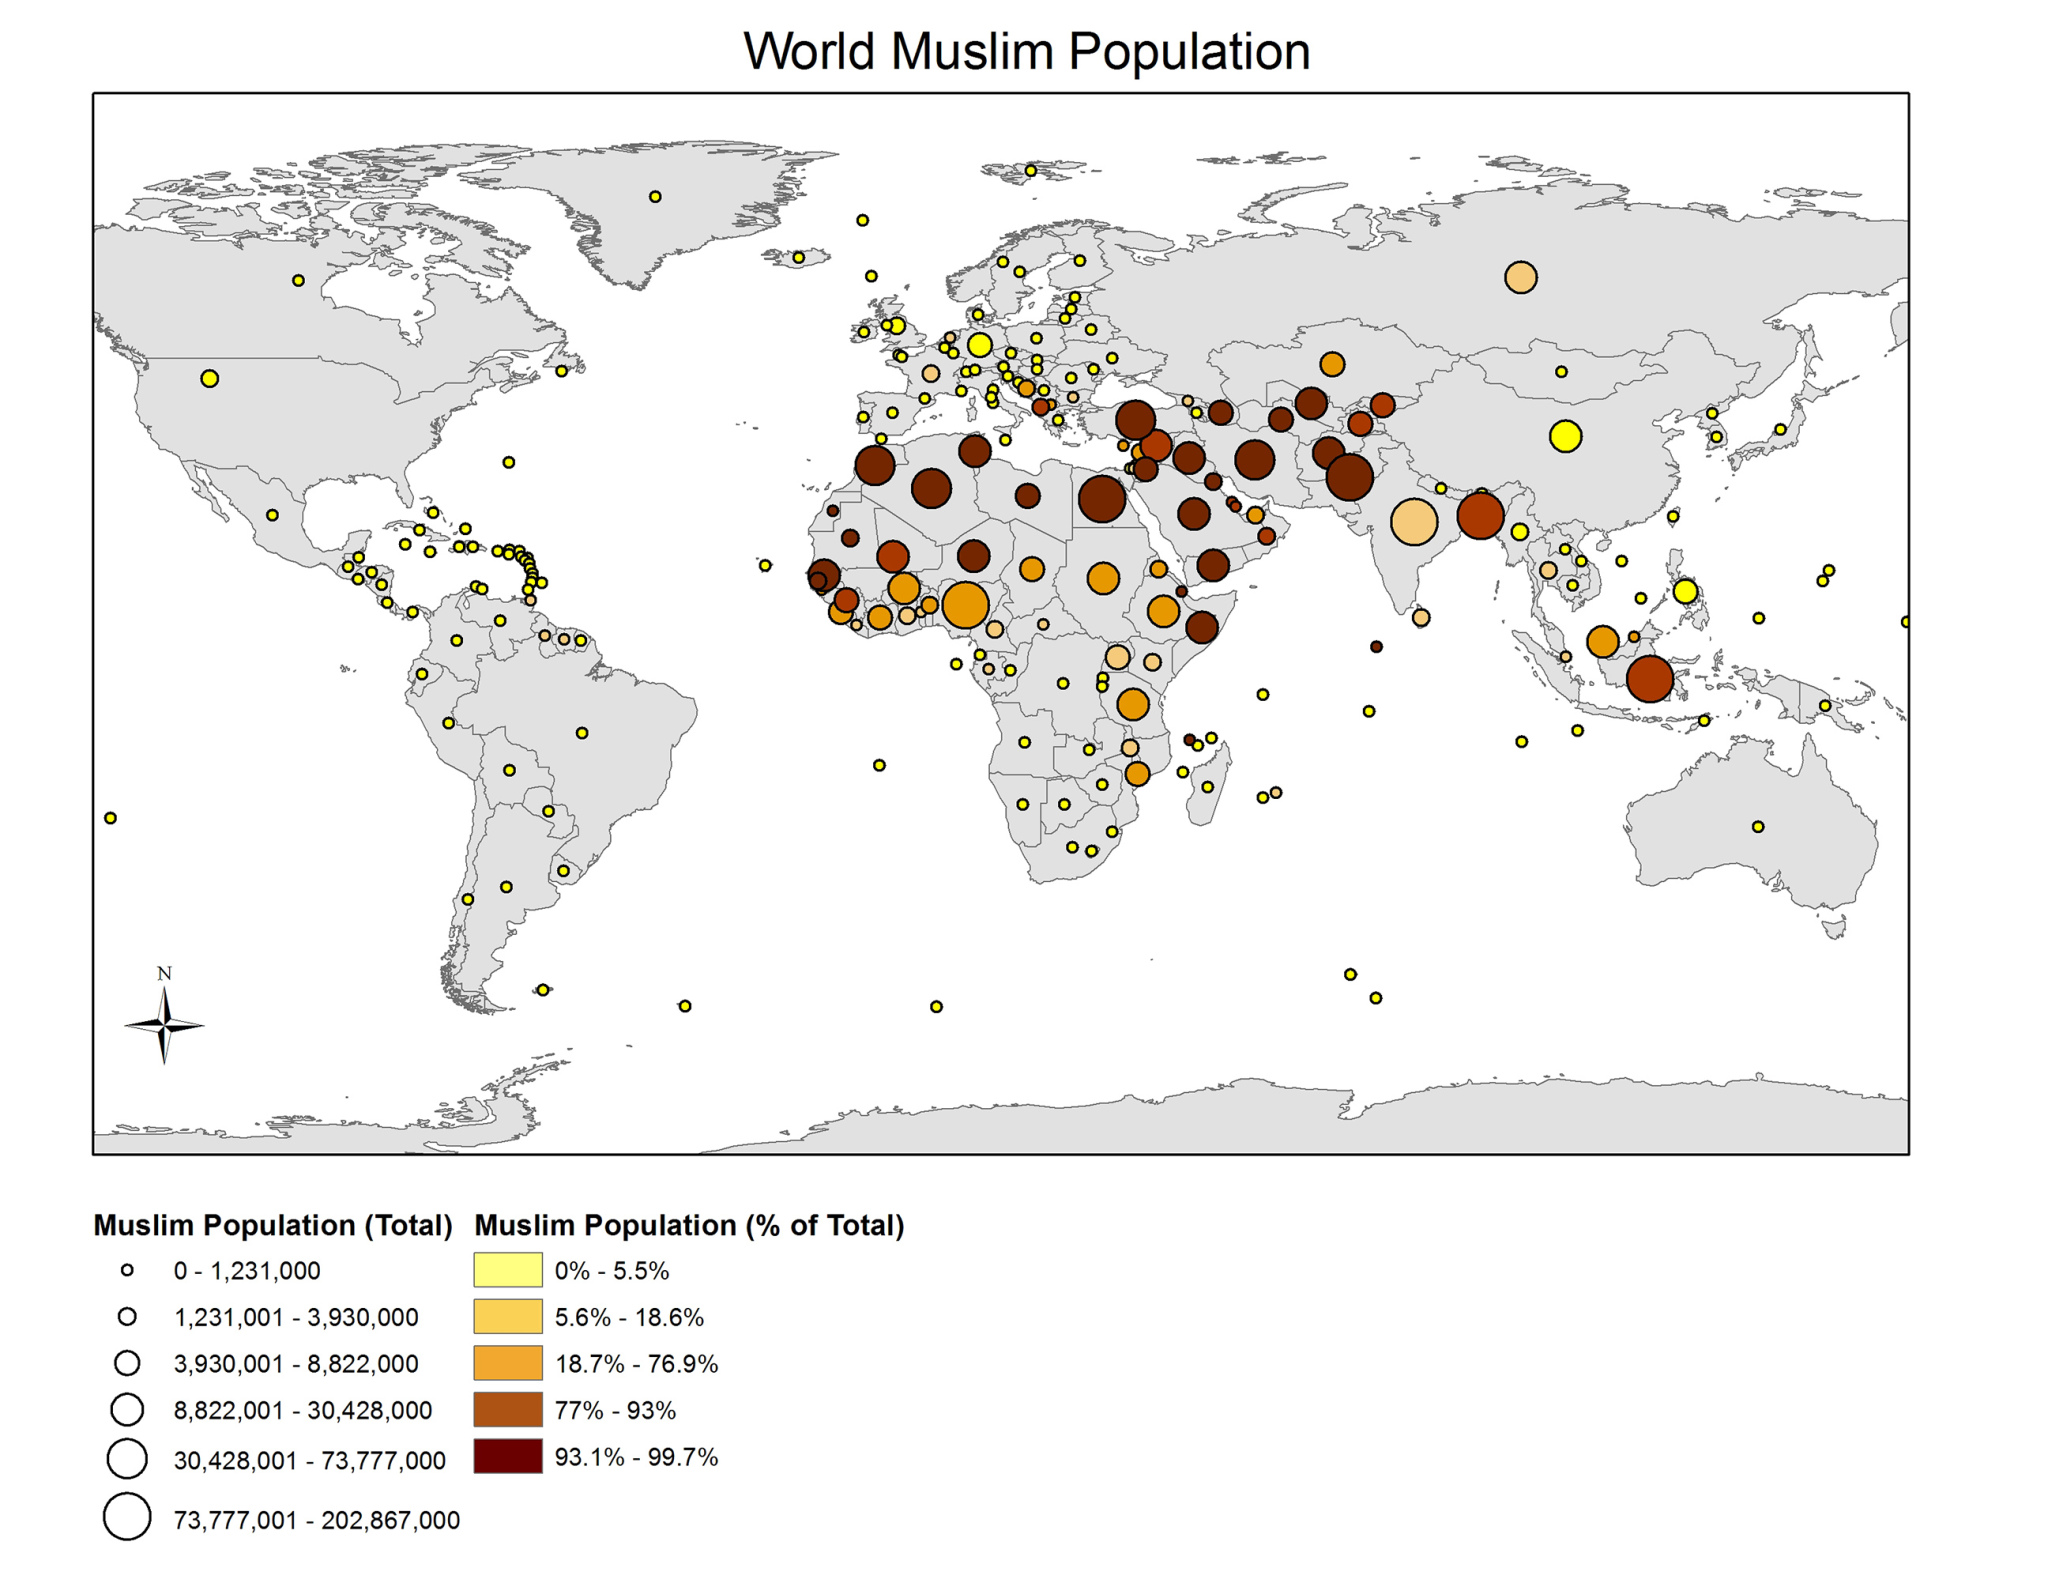 Muslim populations exhibition islam in asia diversity in past cornell university library map collection world muslim population 2010 map 2016 1 130026777 generated by martin ziech using arcview gis 1041 gumiabroncs Gallery